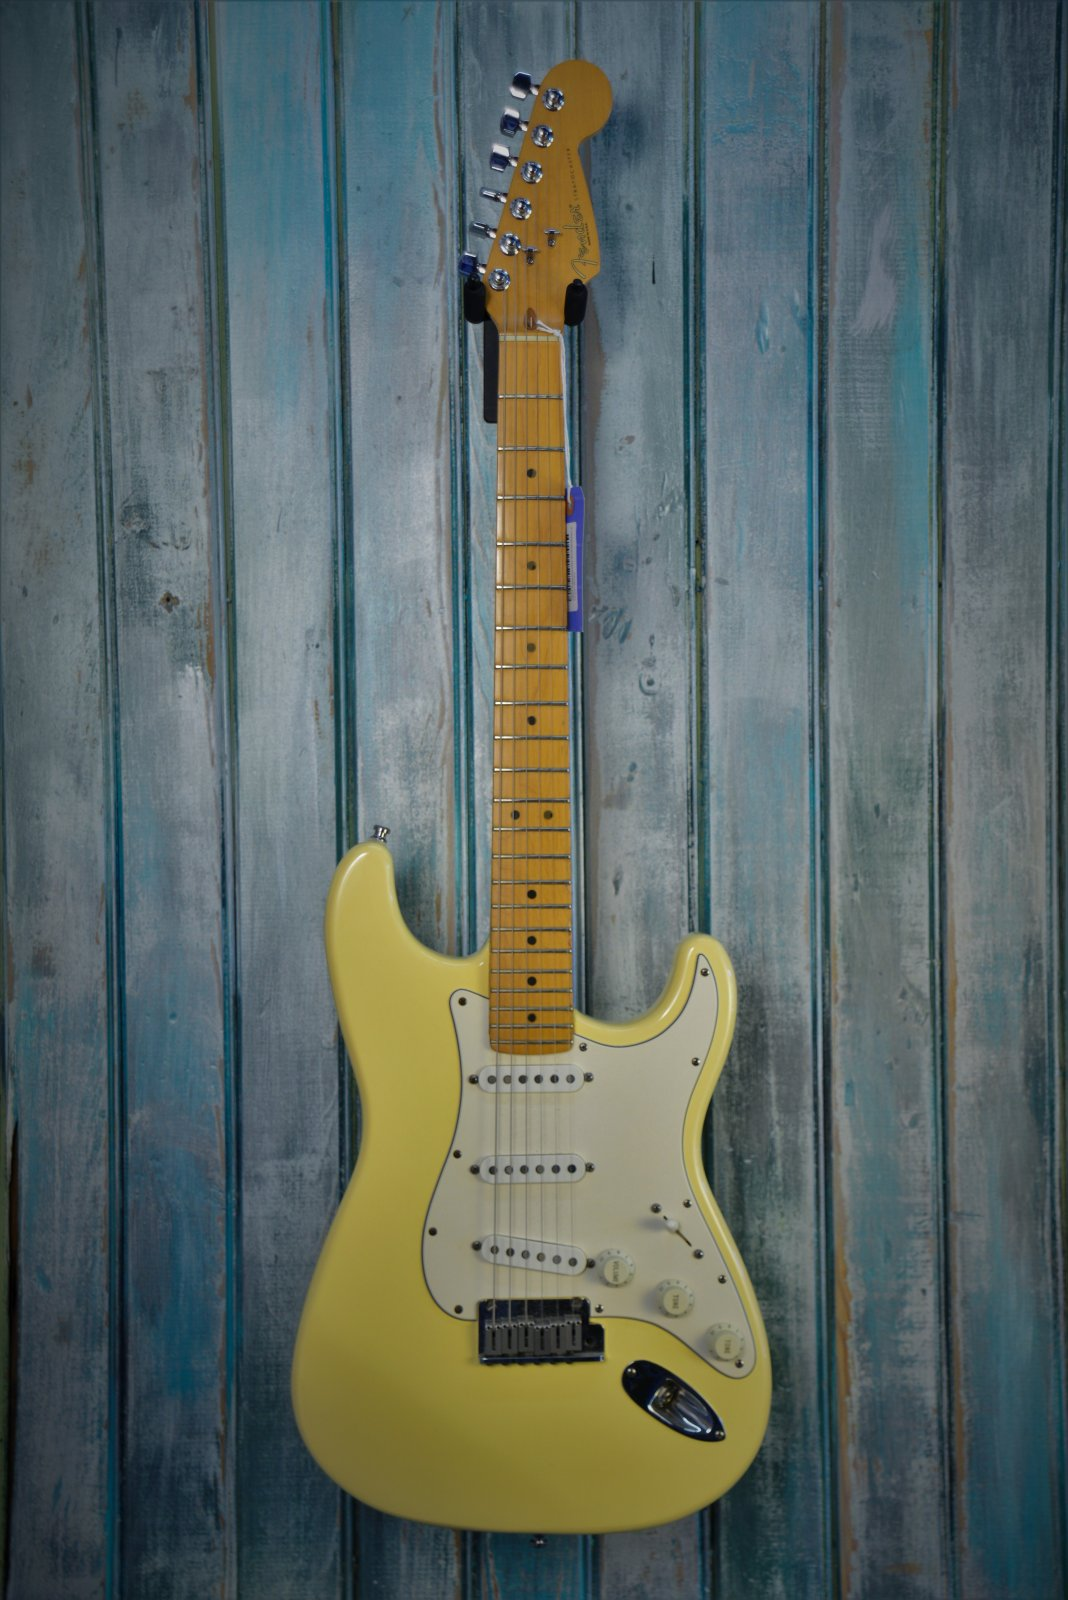 Used 1997 American Standard Stratocaster